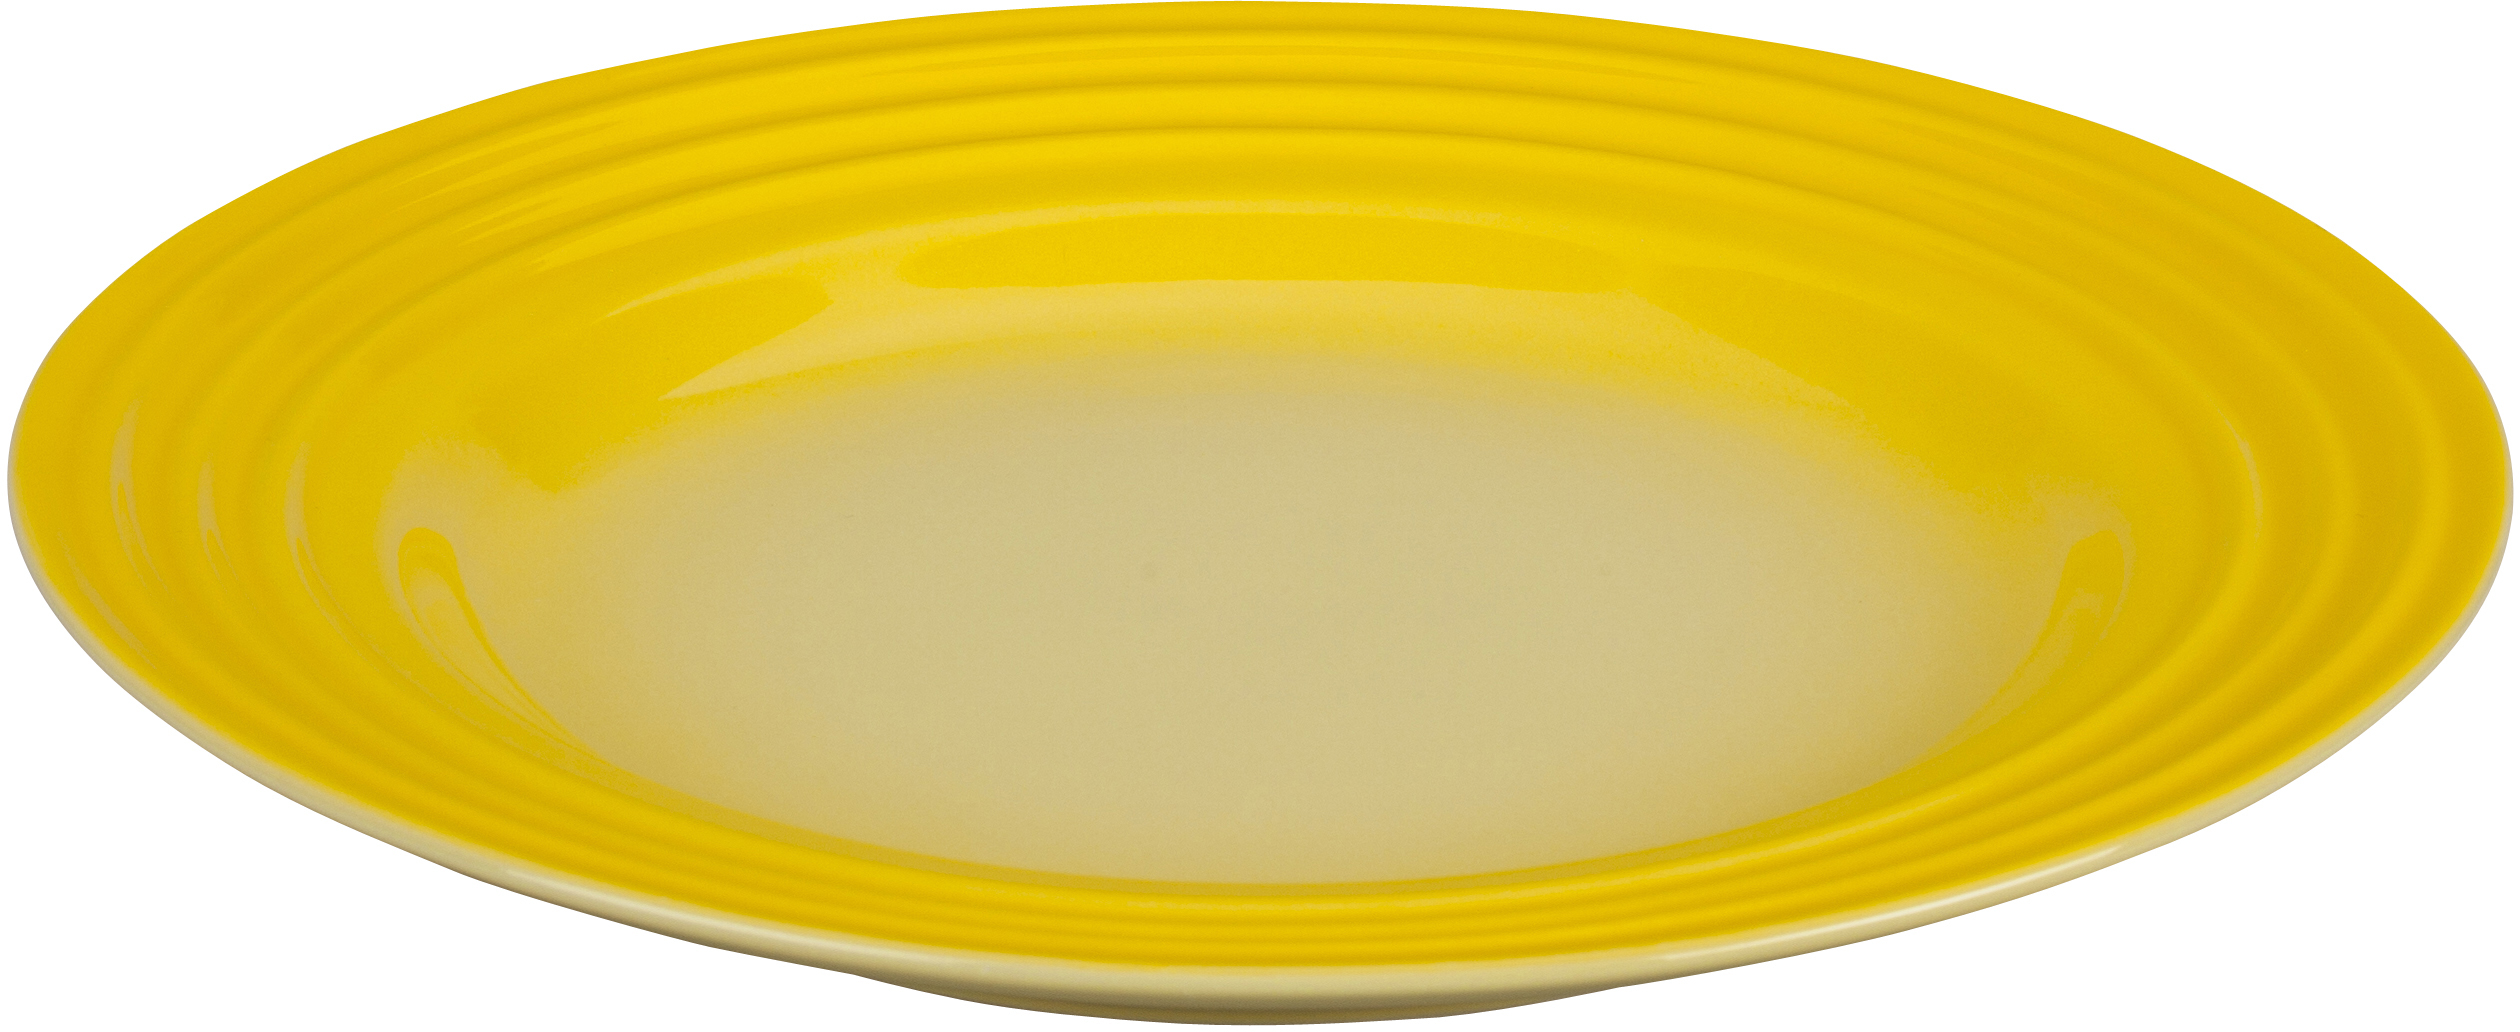 Le Creuset Soleil Yellow Stoneware Salad Plate, 10 Inch